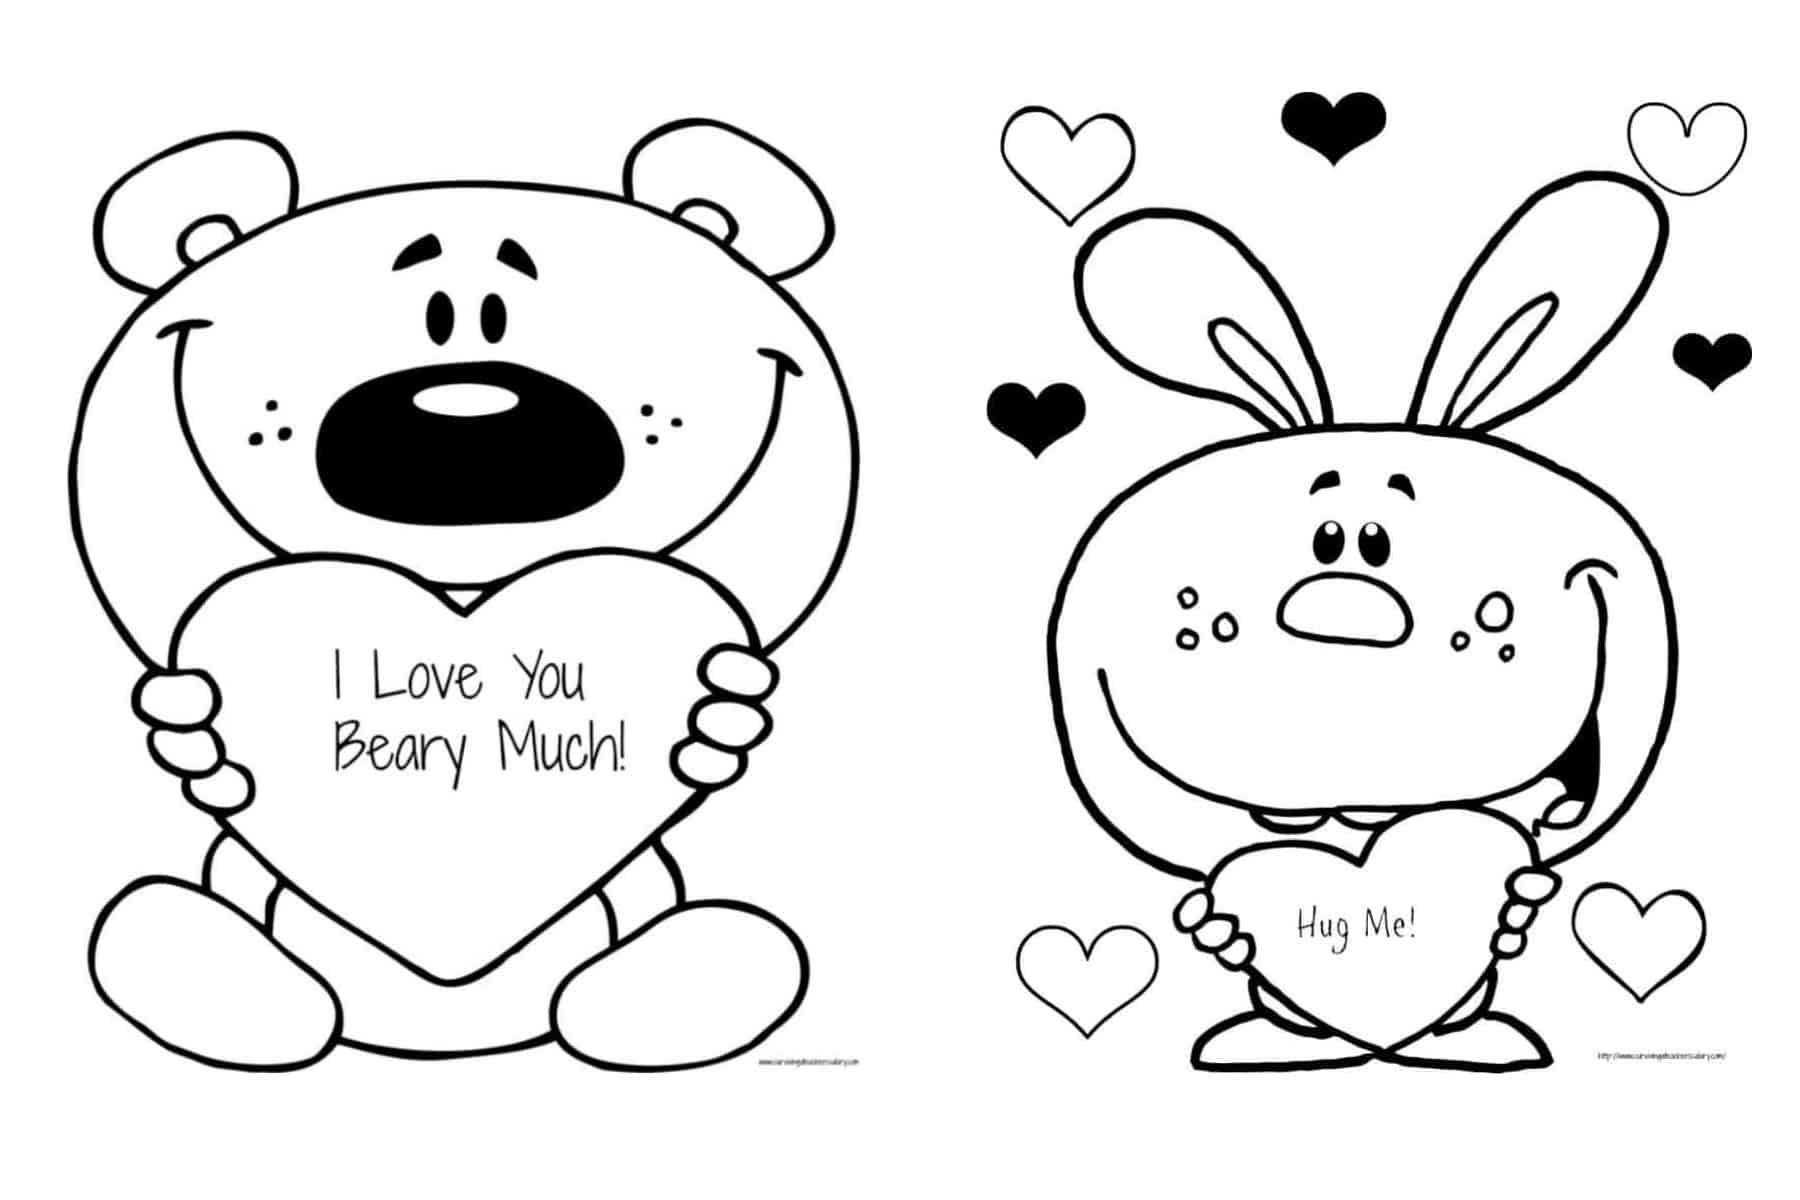 i love you printable coloring pages get this simple i love you coloring pages to print for coloring pages printable you i love